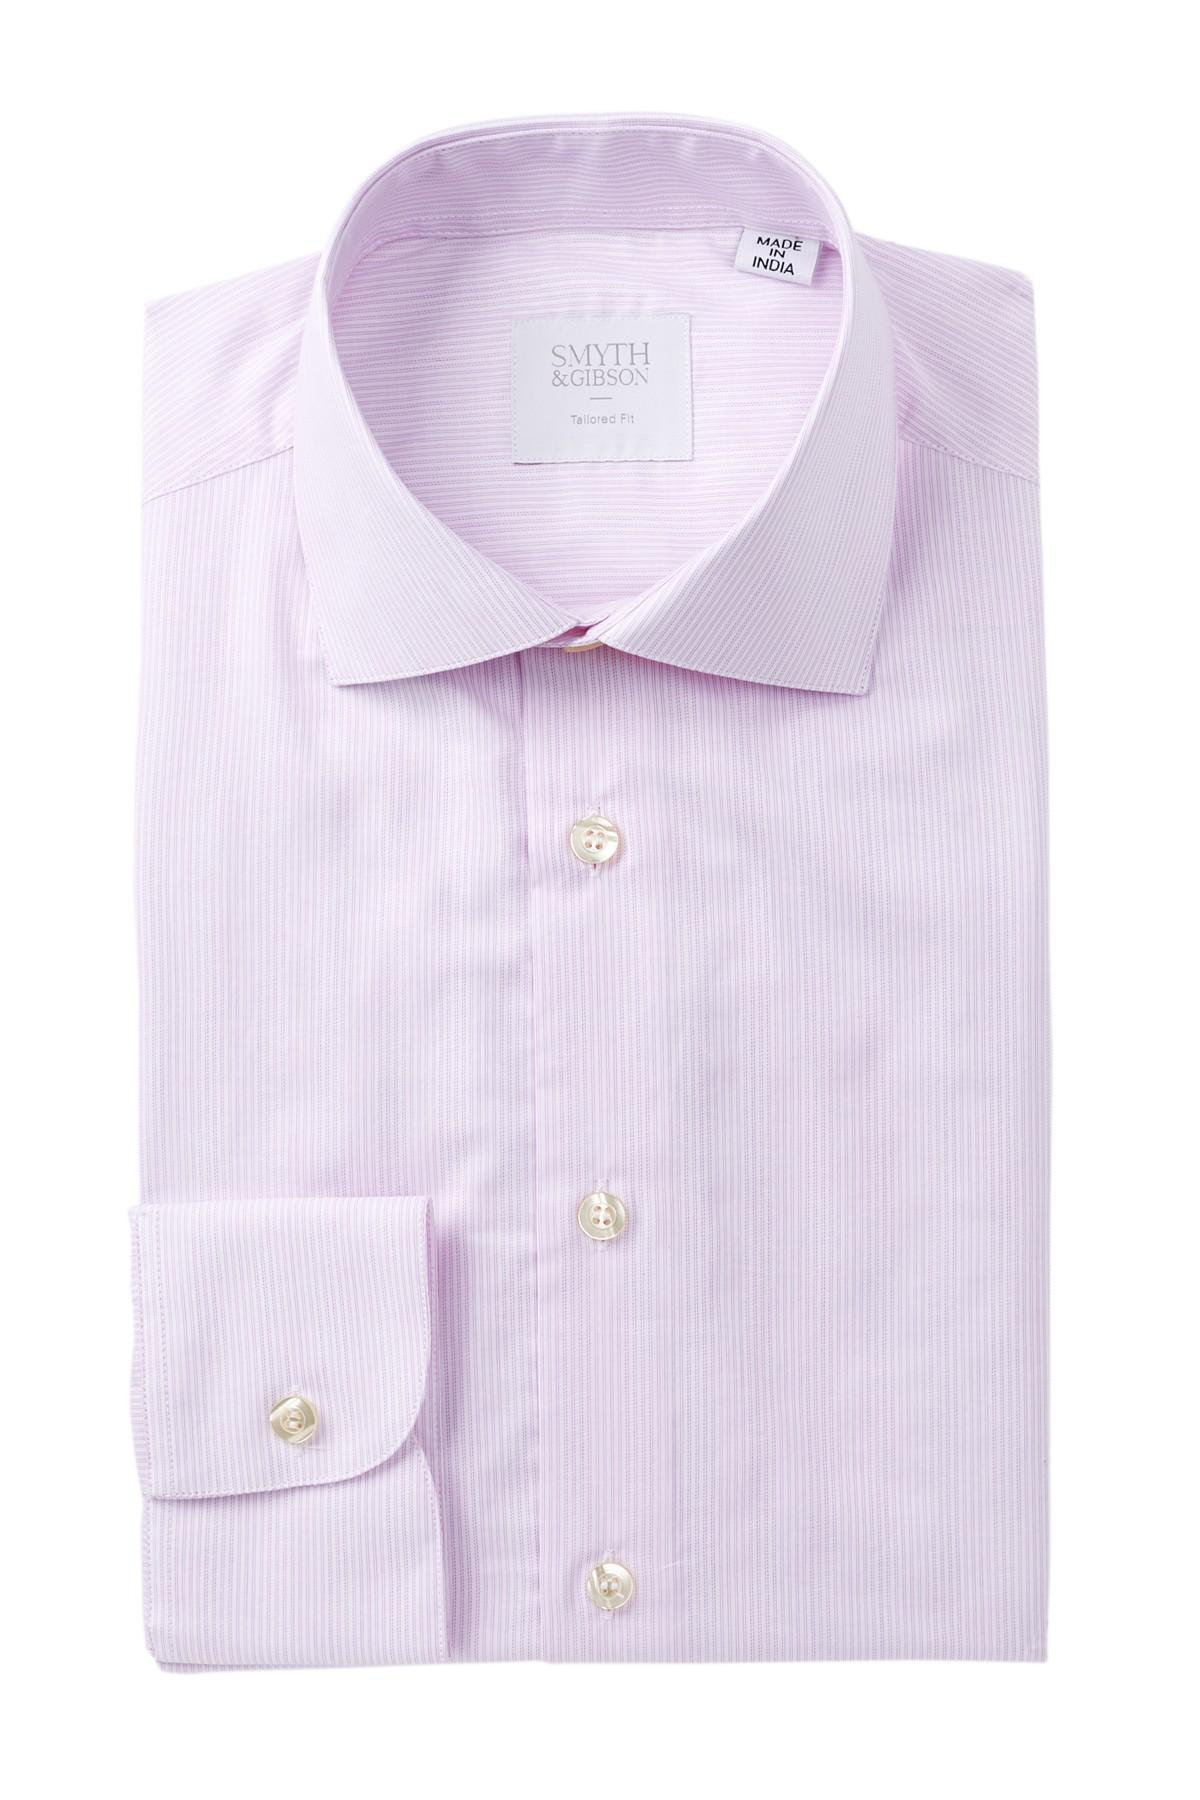 Lyst smyth gibson dobby micro stripe tailored fit for Nordstrom custom dress shirts